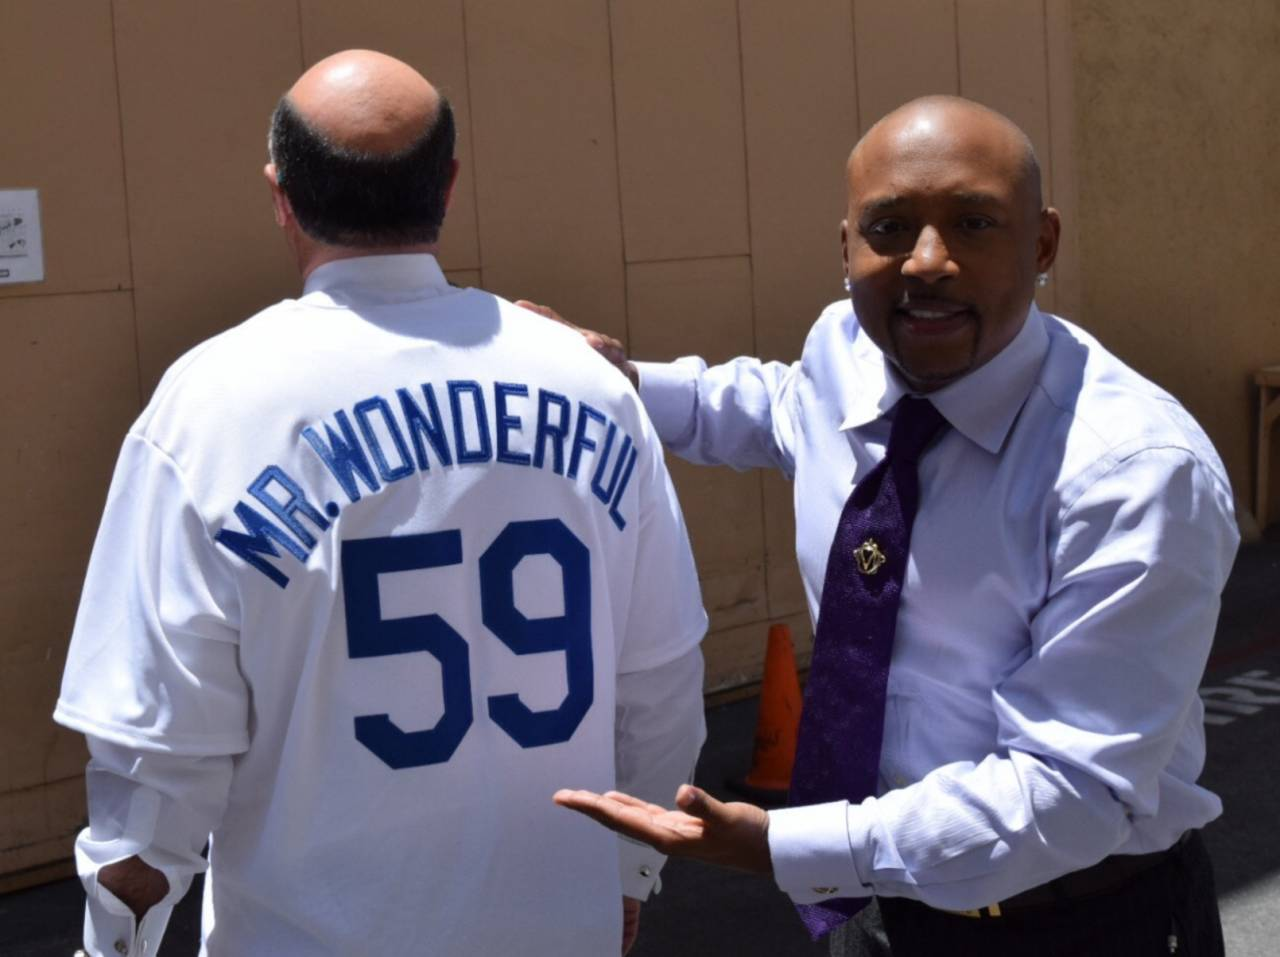 Daymond John with Mr. Wonderful